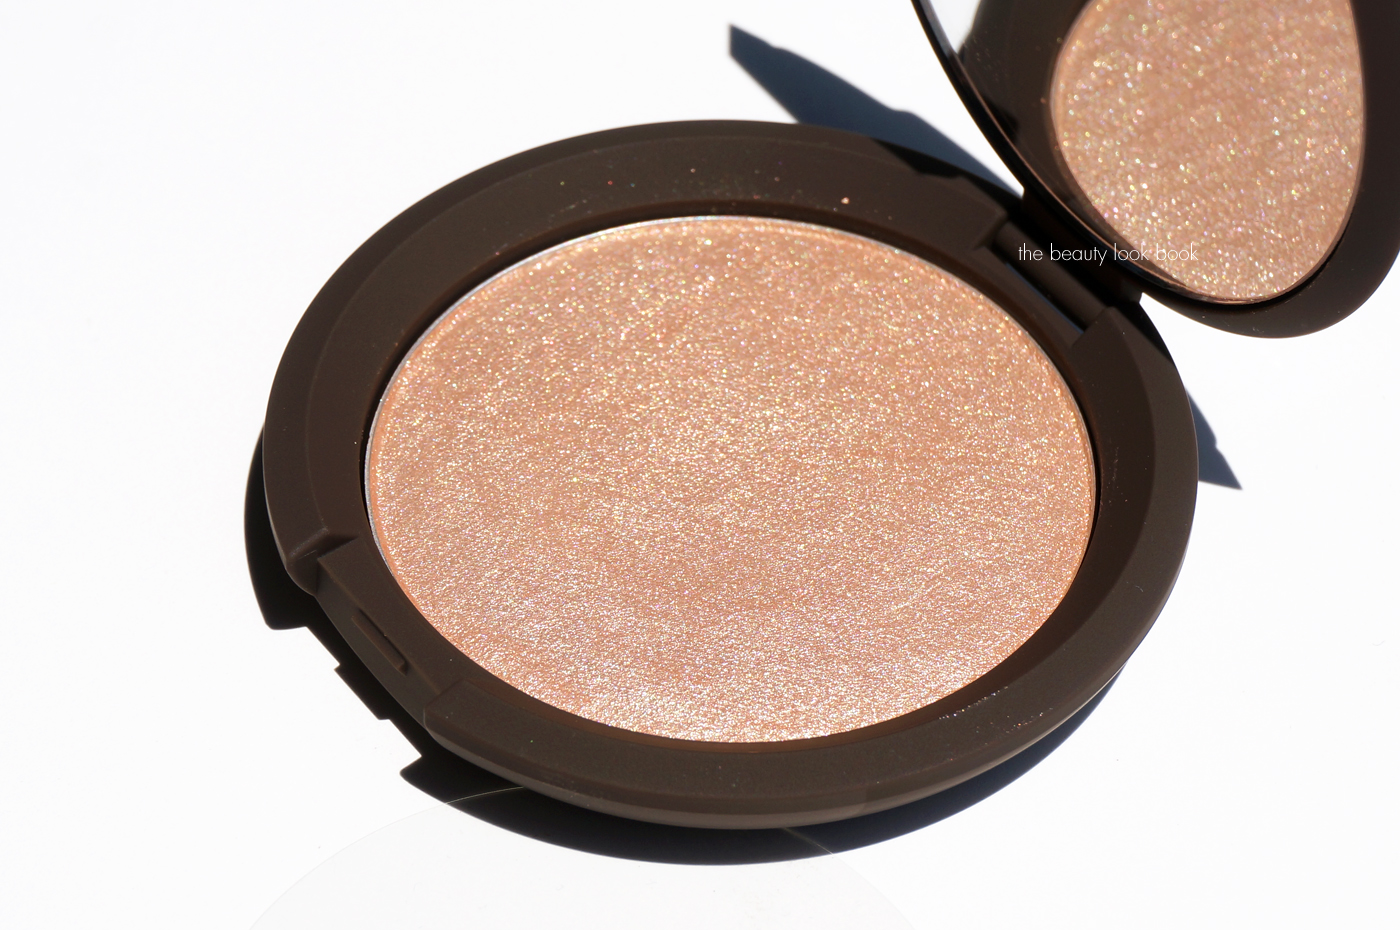 Becca x Jaclyn Hill Shimmering Skin Perfector in Champagne Pop